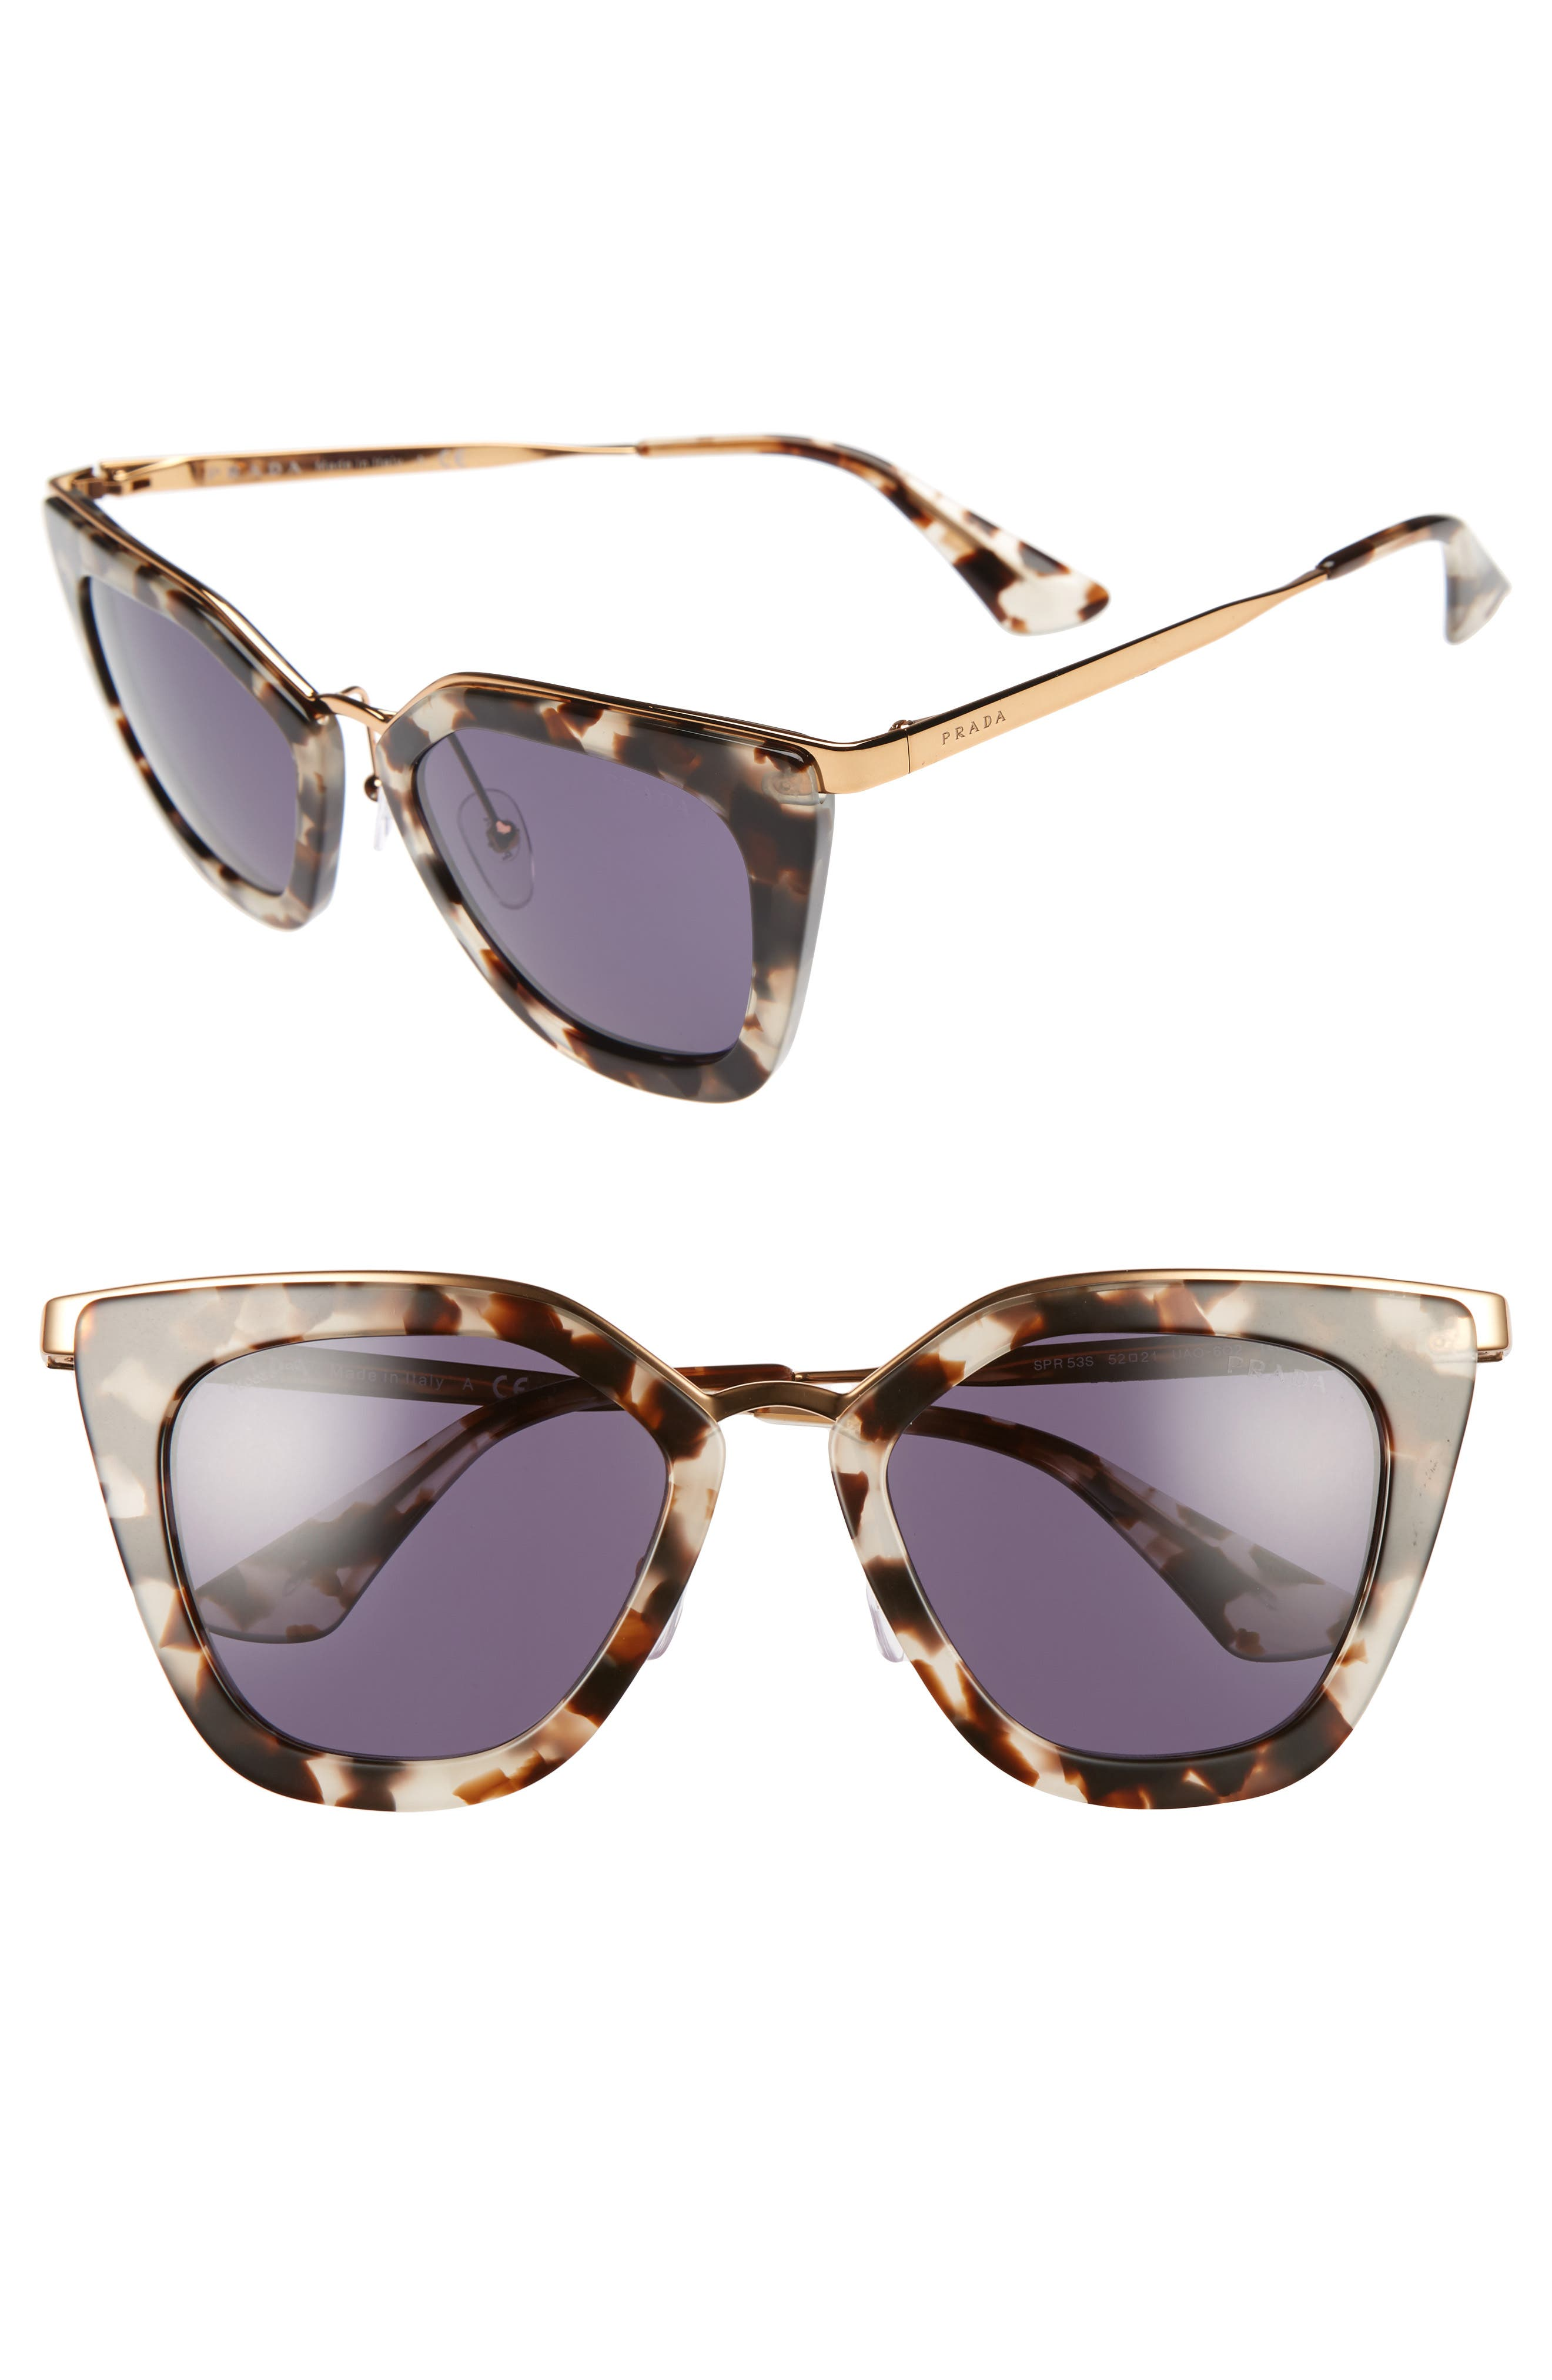 52mm Layered Frame Sunglasses,                         Main,                         color,